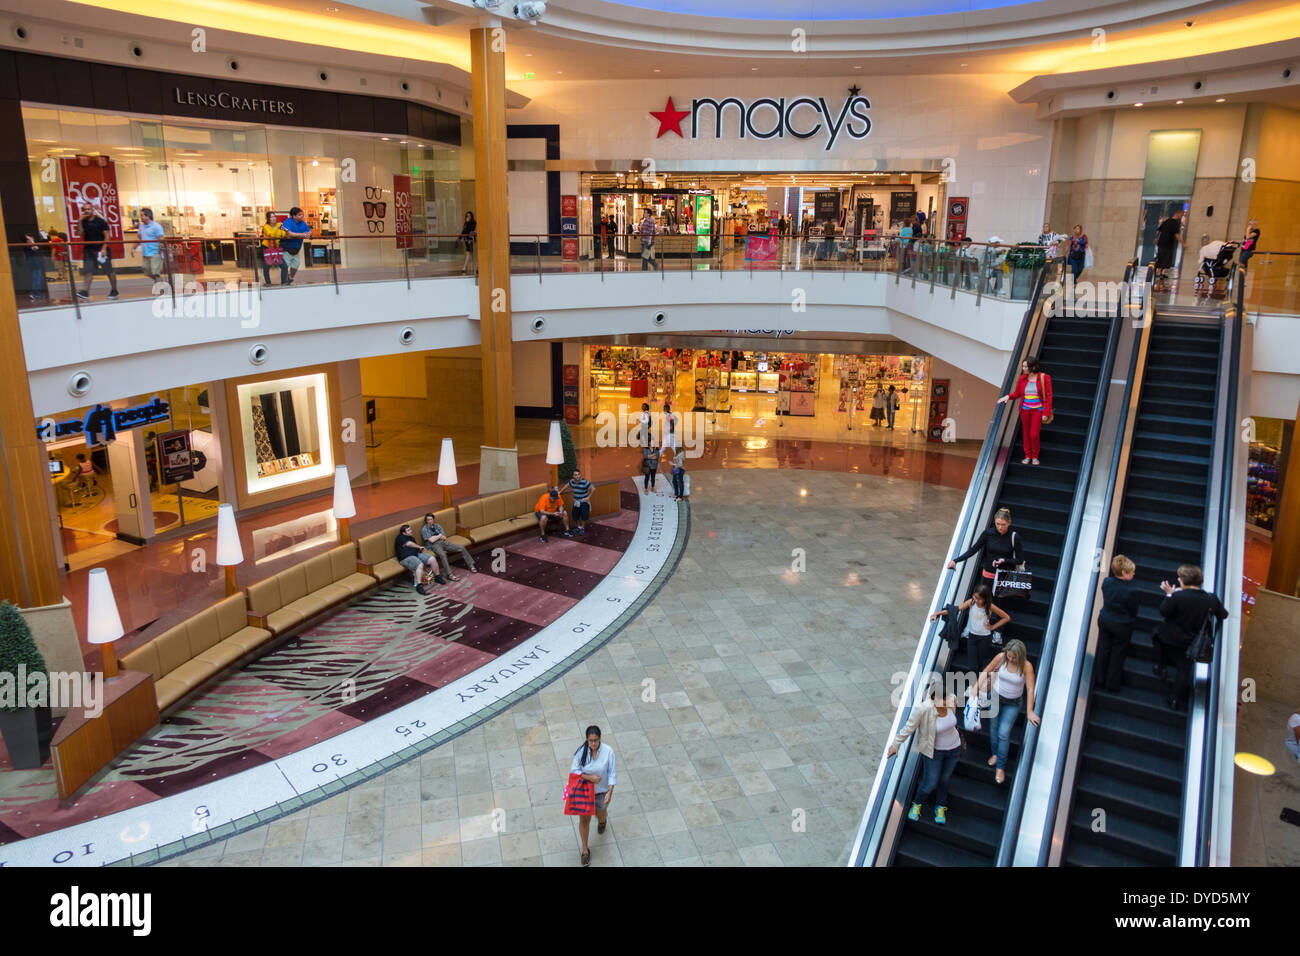 Orlando Florida The Mall at Millenia shopping Macy's Department Store front entrance sign atrium escalators multi level stores businesses - Stock Image